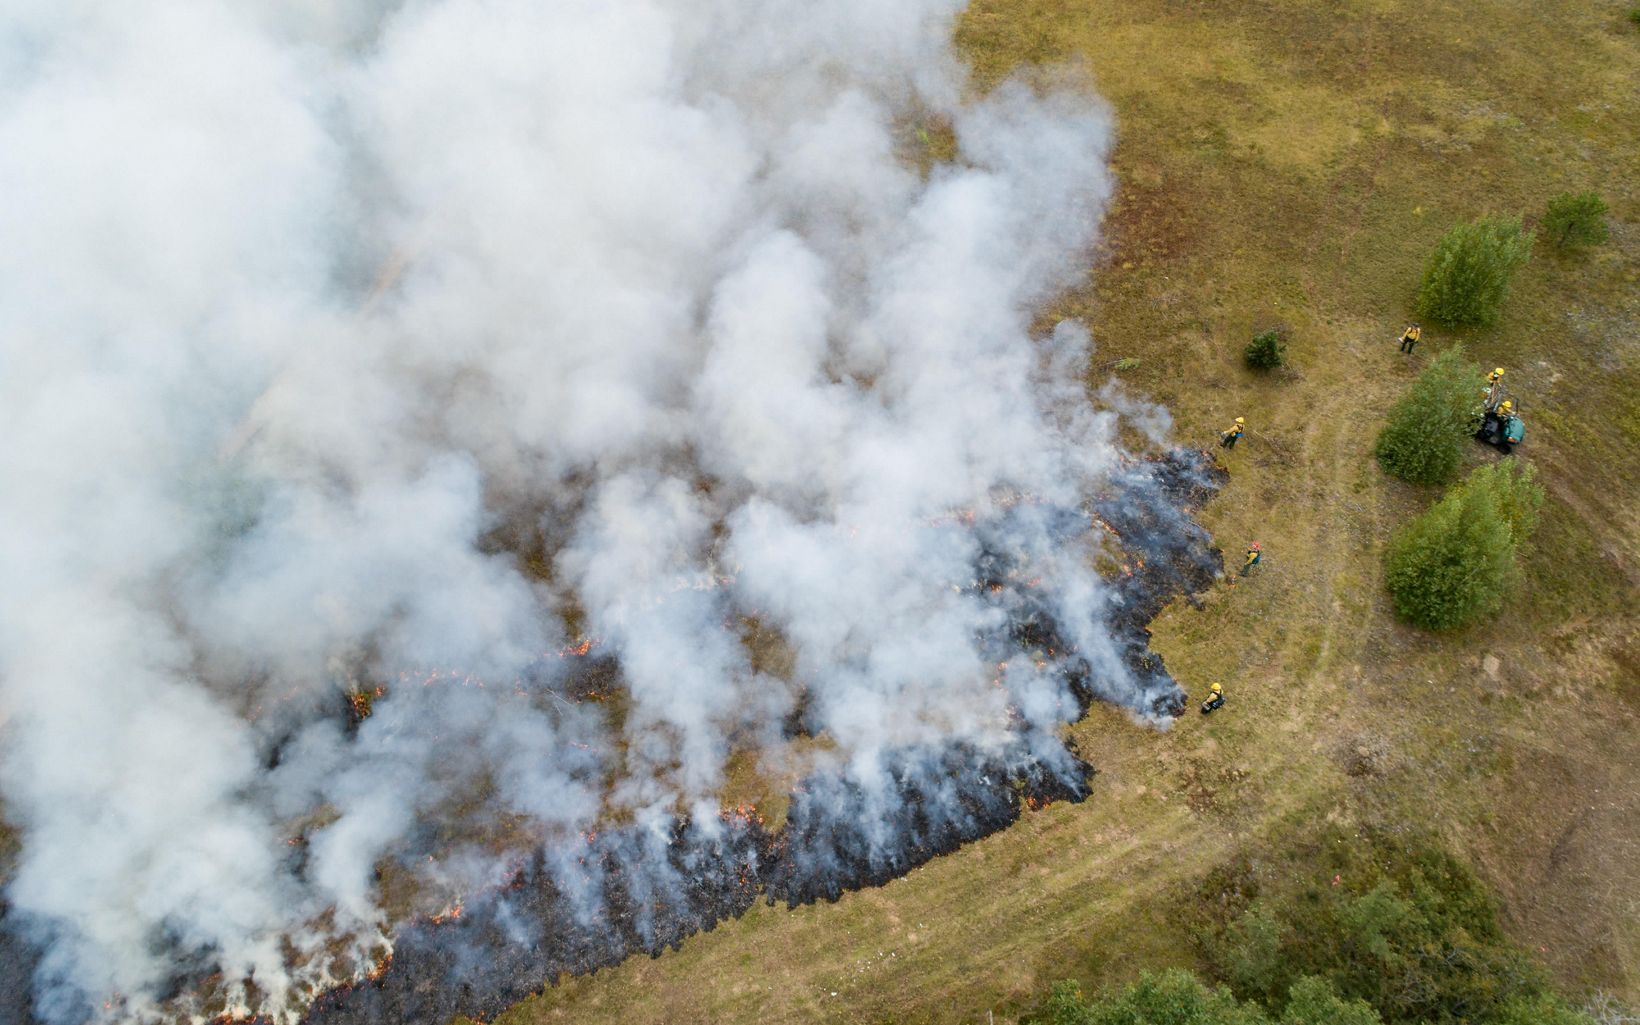 Crew members work the edges of a controlled burn on the grassland at Kennebunk Plains Preserve.